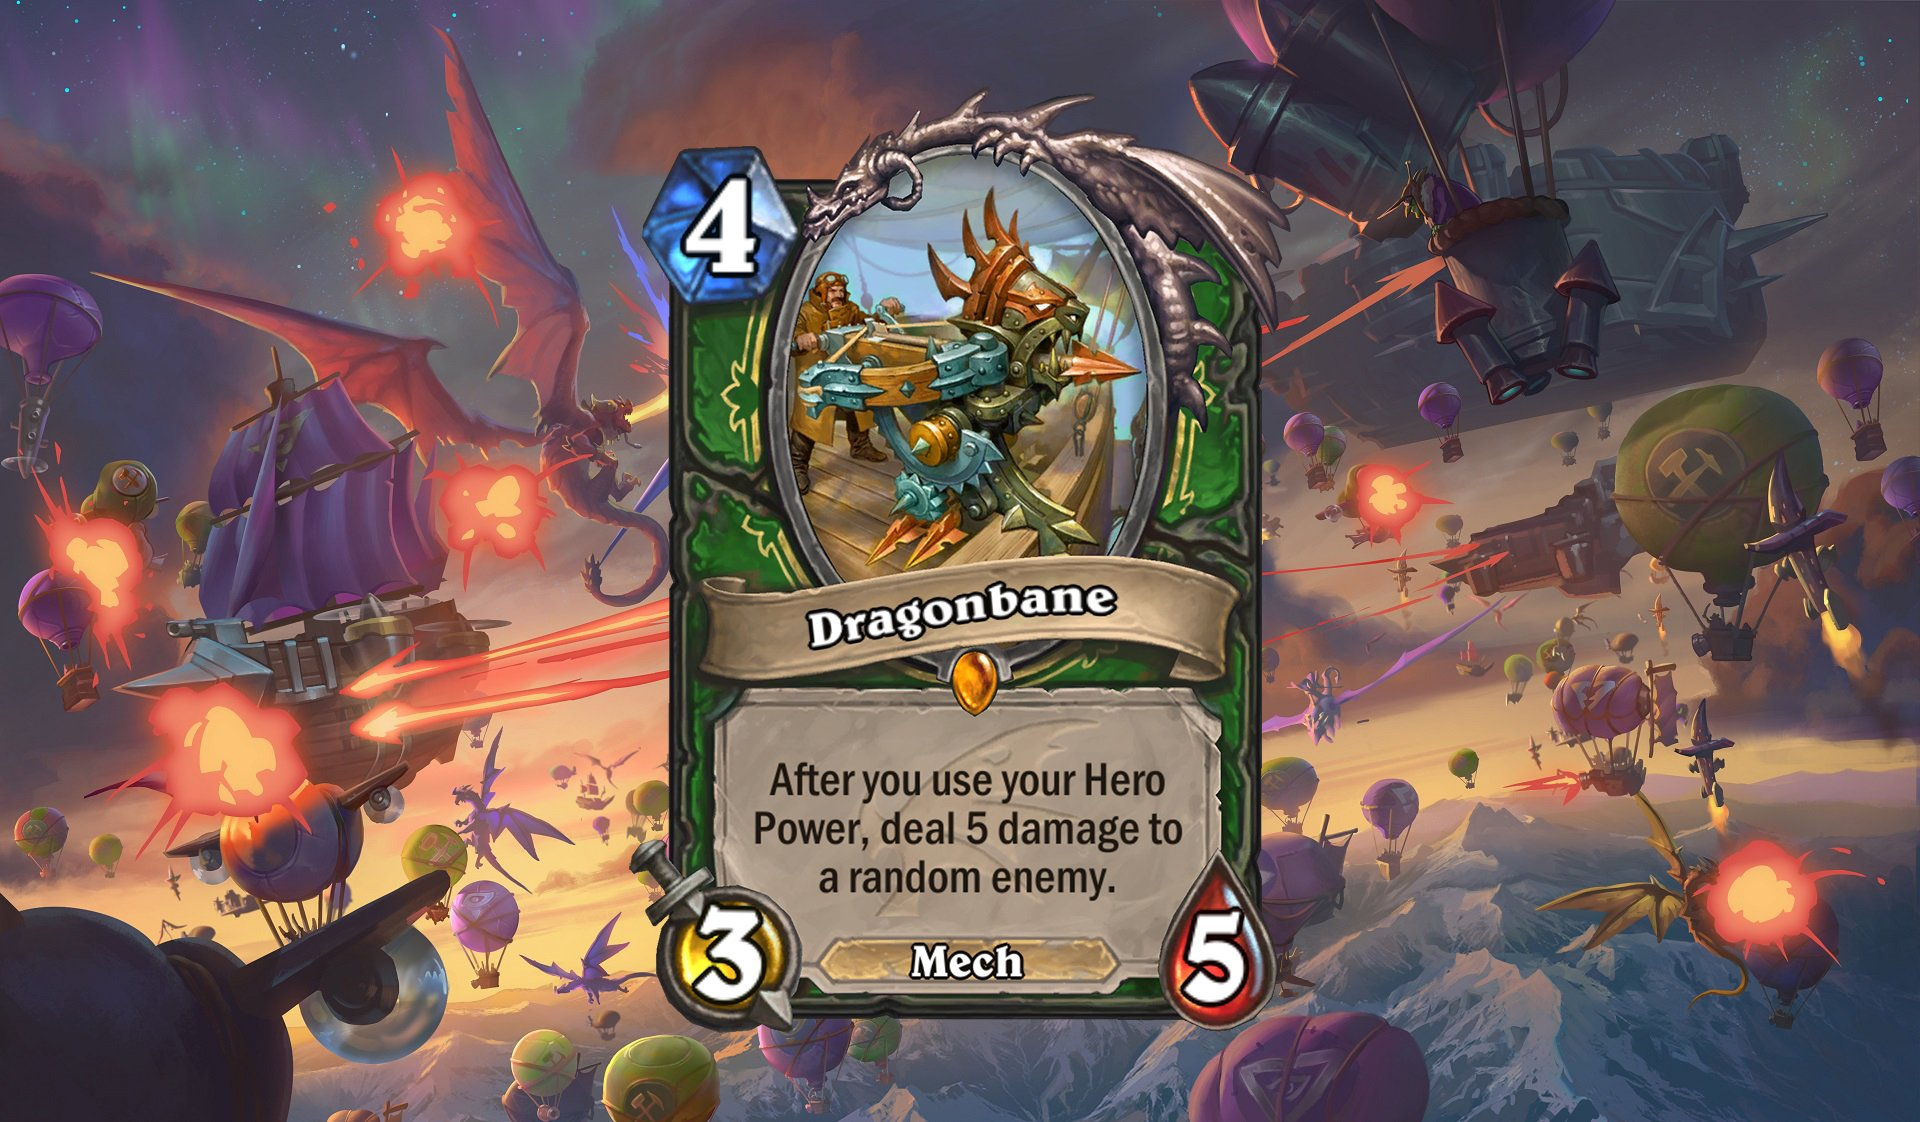 Hearthstone - Dragonbane